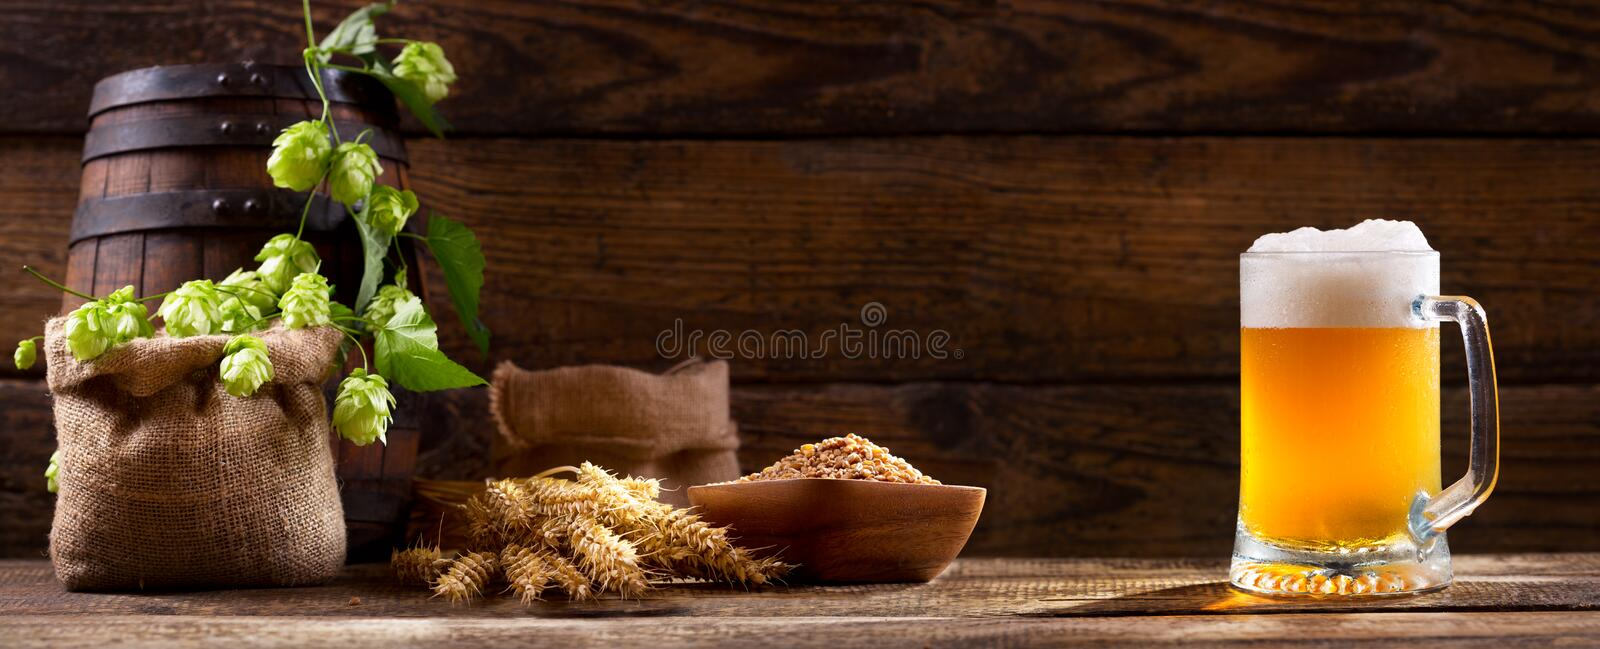 Mug of beer with green hops and wheat ears royalty free stock photo